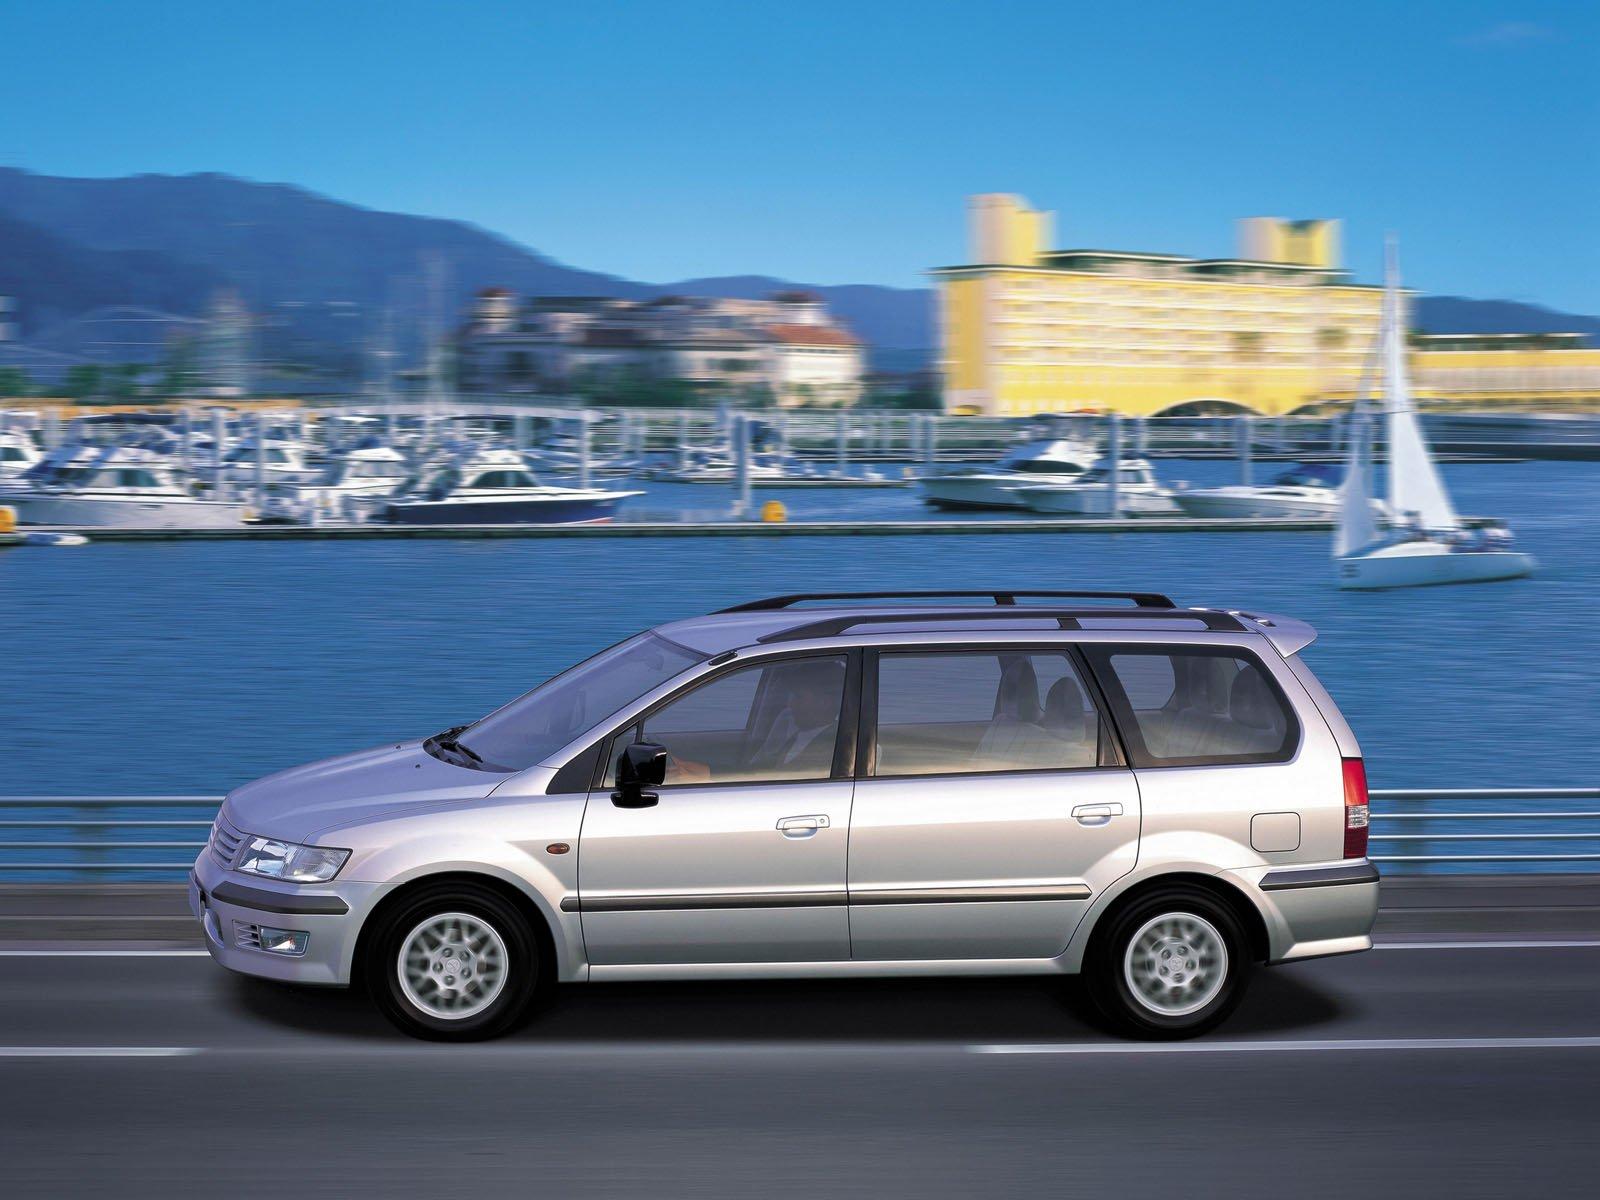 mitsubishi space wagon pictures #15